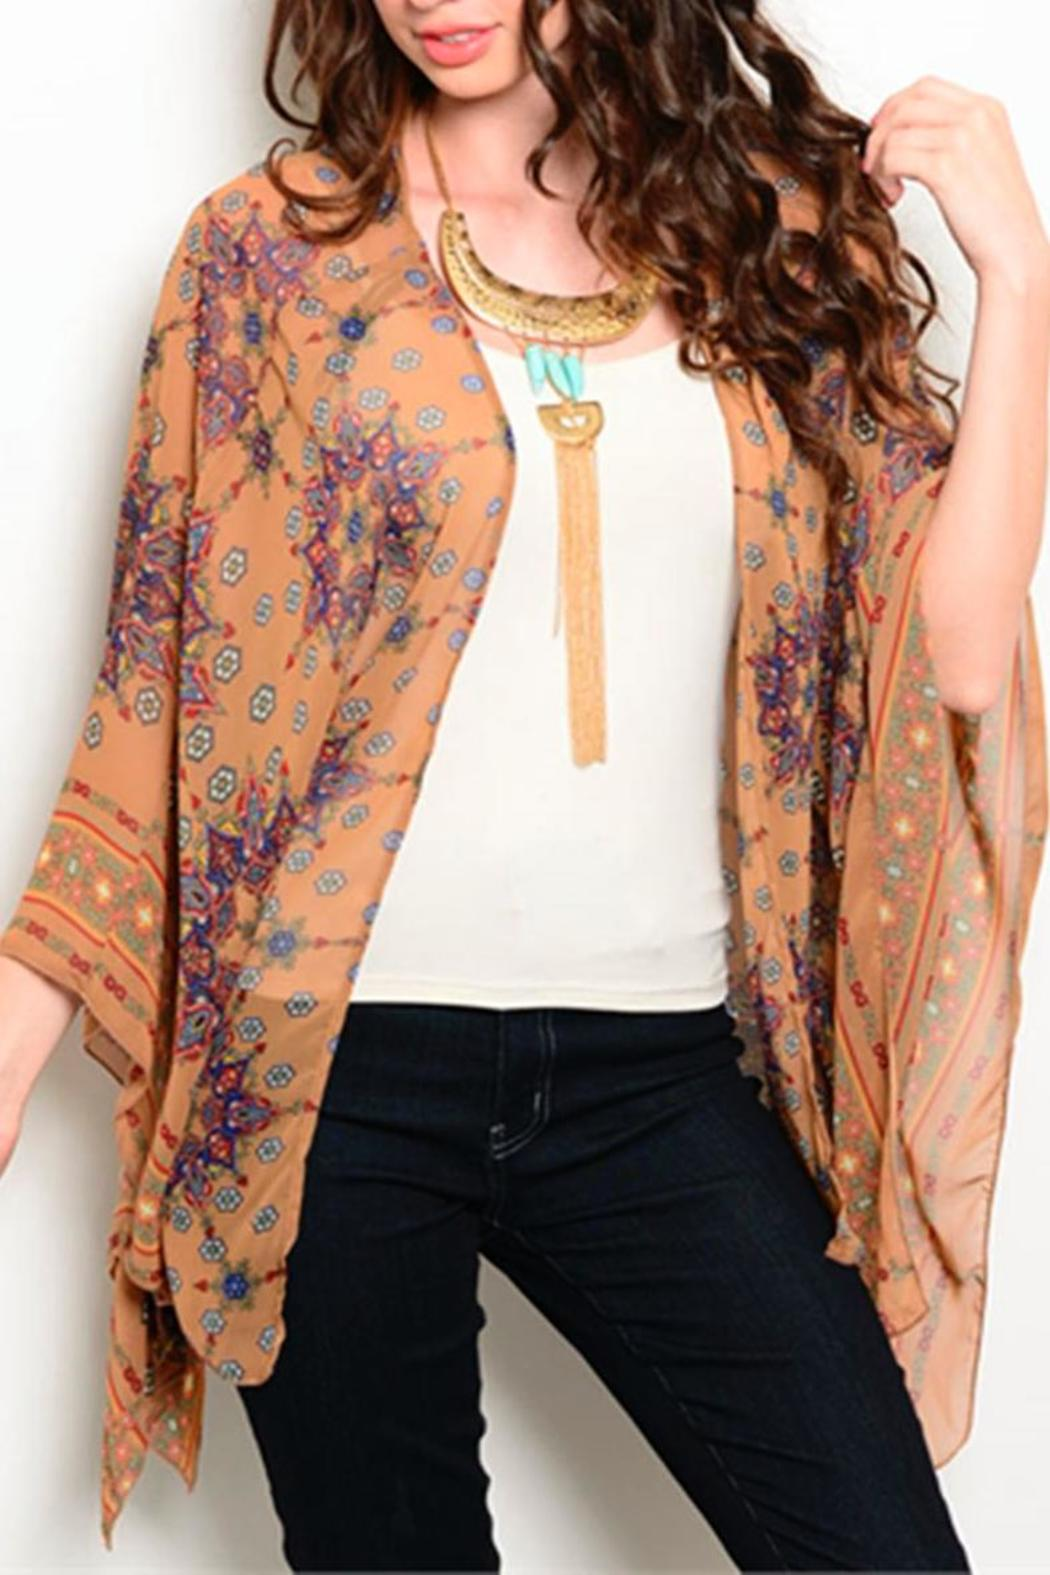 Yoyo 5 Tan Kimono Cardigan from Tennessee by The Owl Cove — Shoptiques